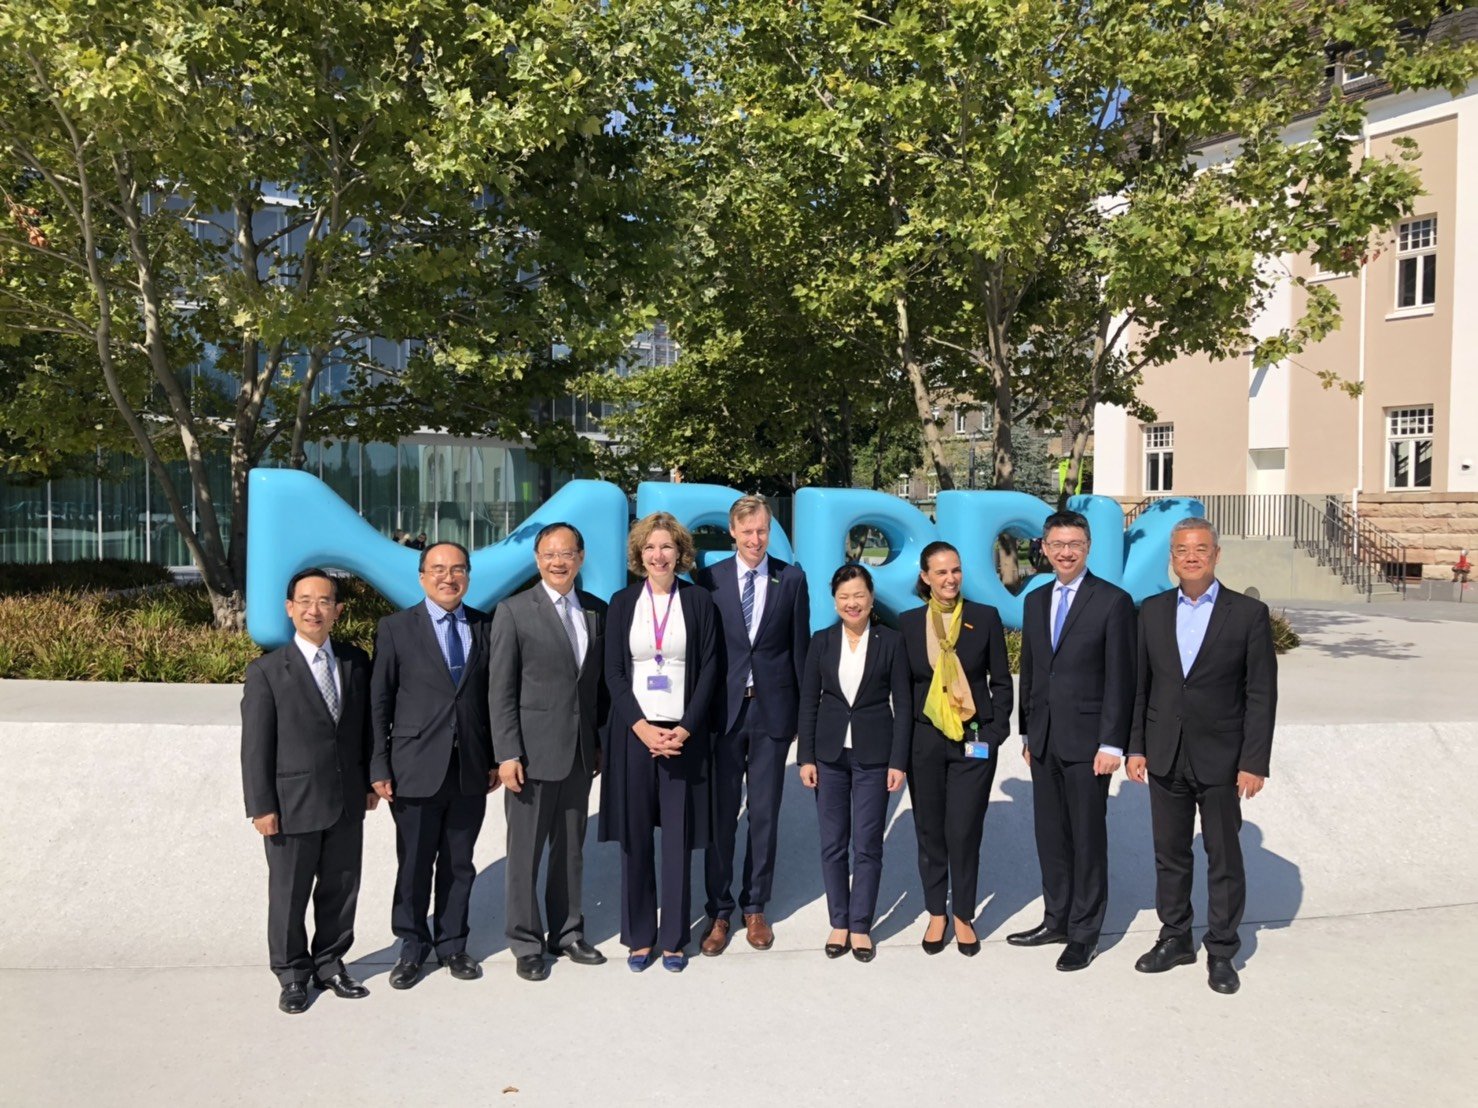 2019 Europe Investment Promotion Delegation photo-1